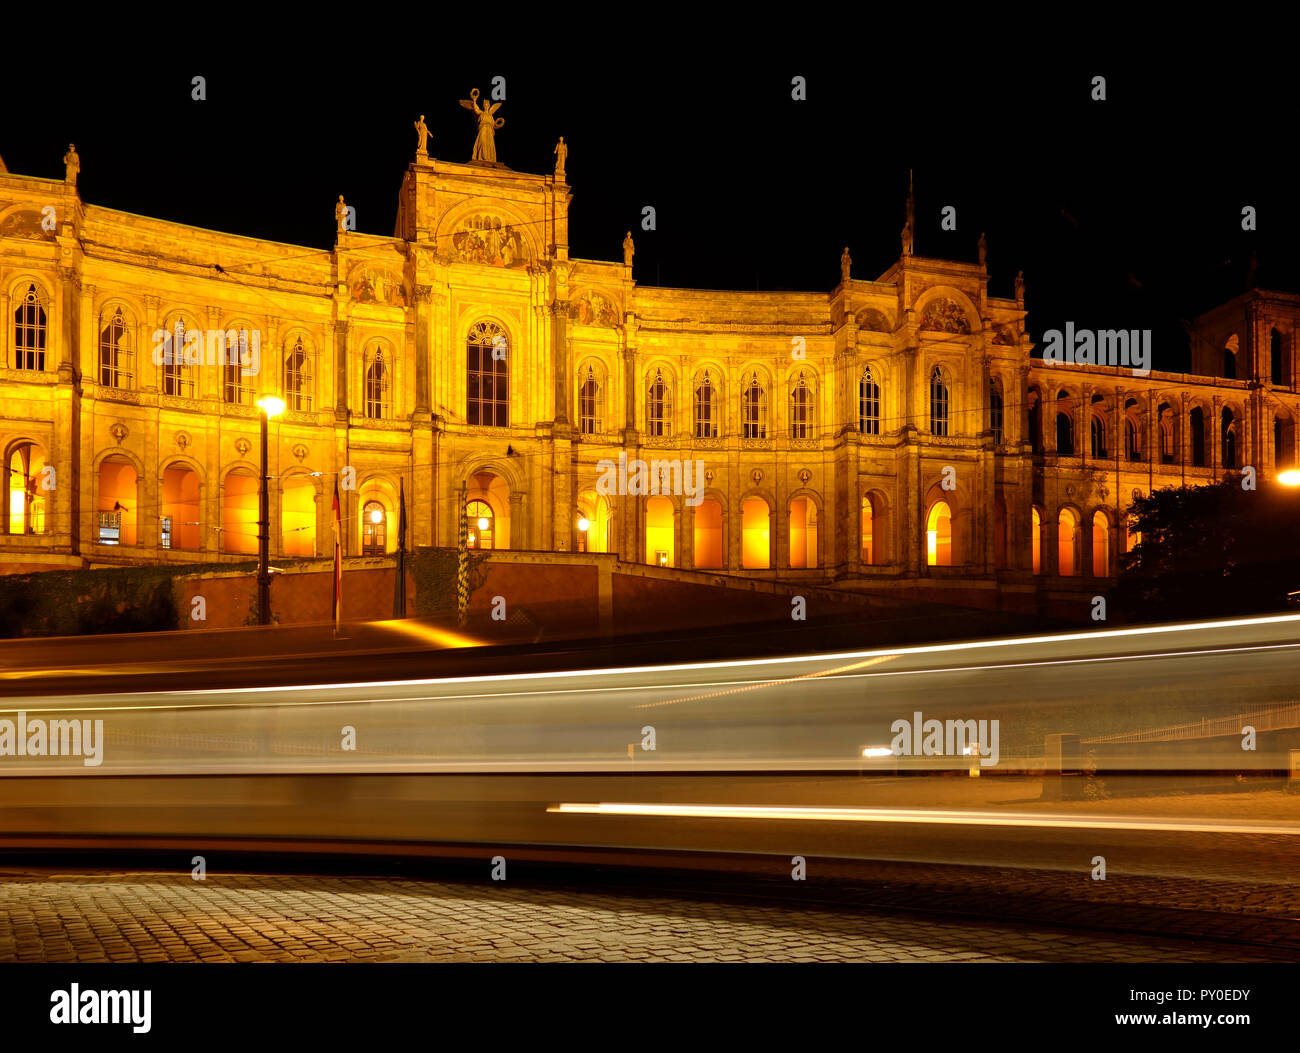 the historical building Maximillianeum in Munich, city of Bavaria, part of Germany at night with light rays from a passing street car by long exposure - Stock Image